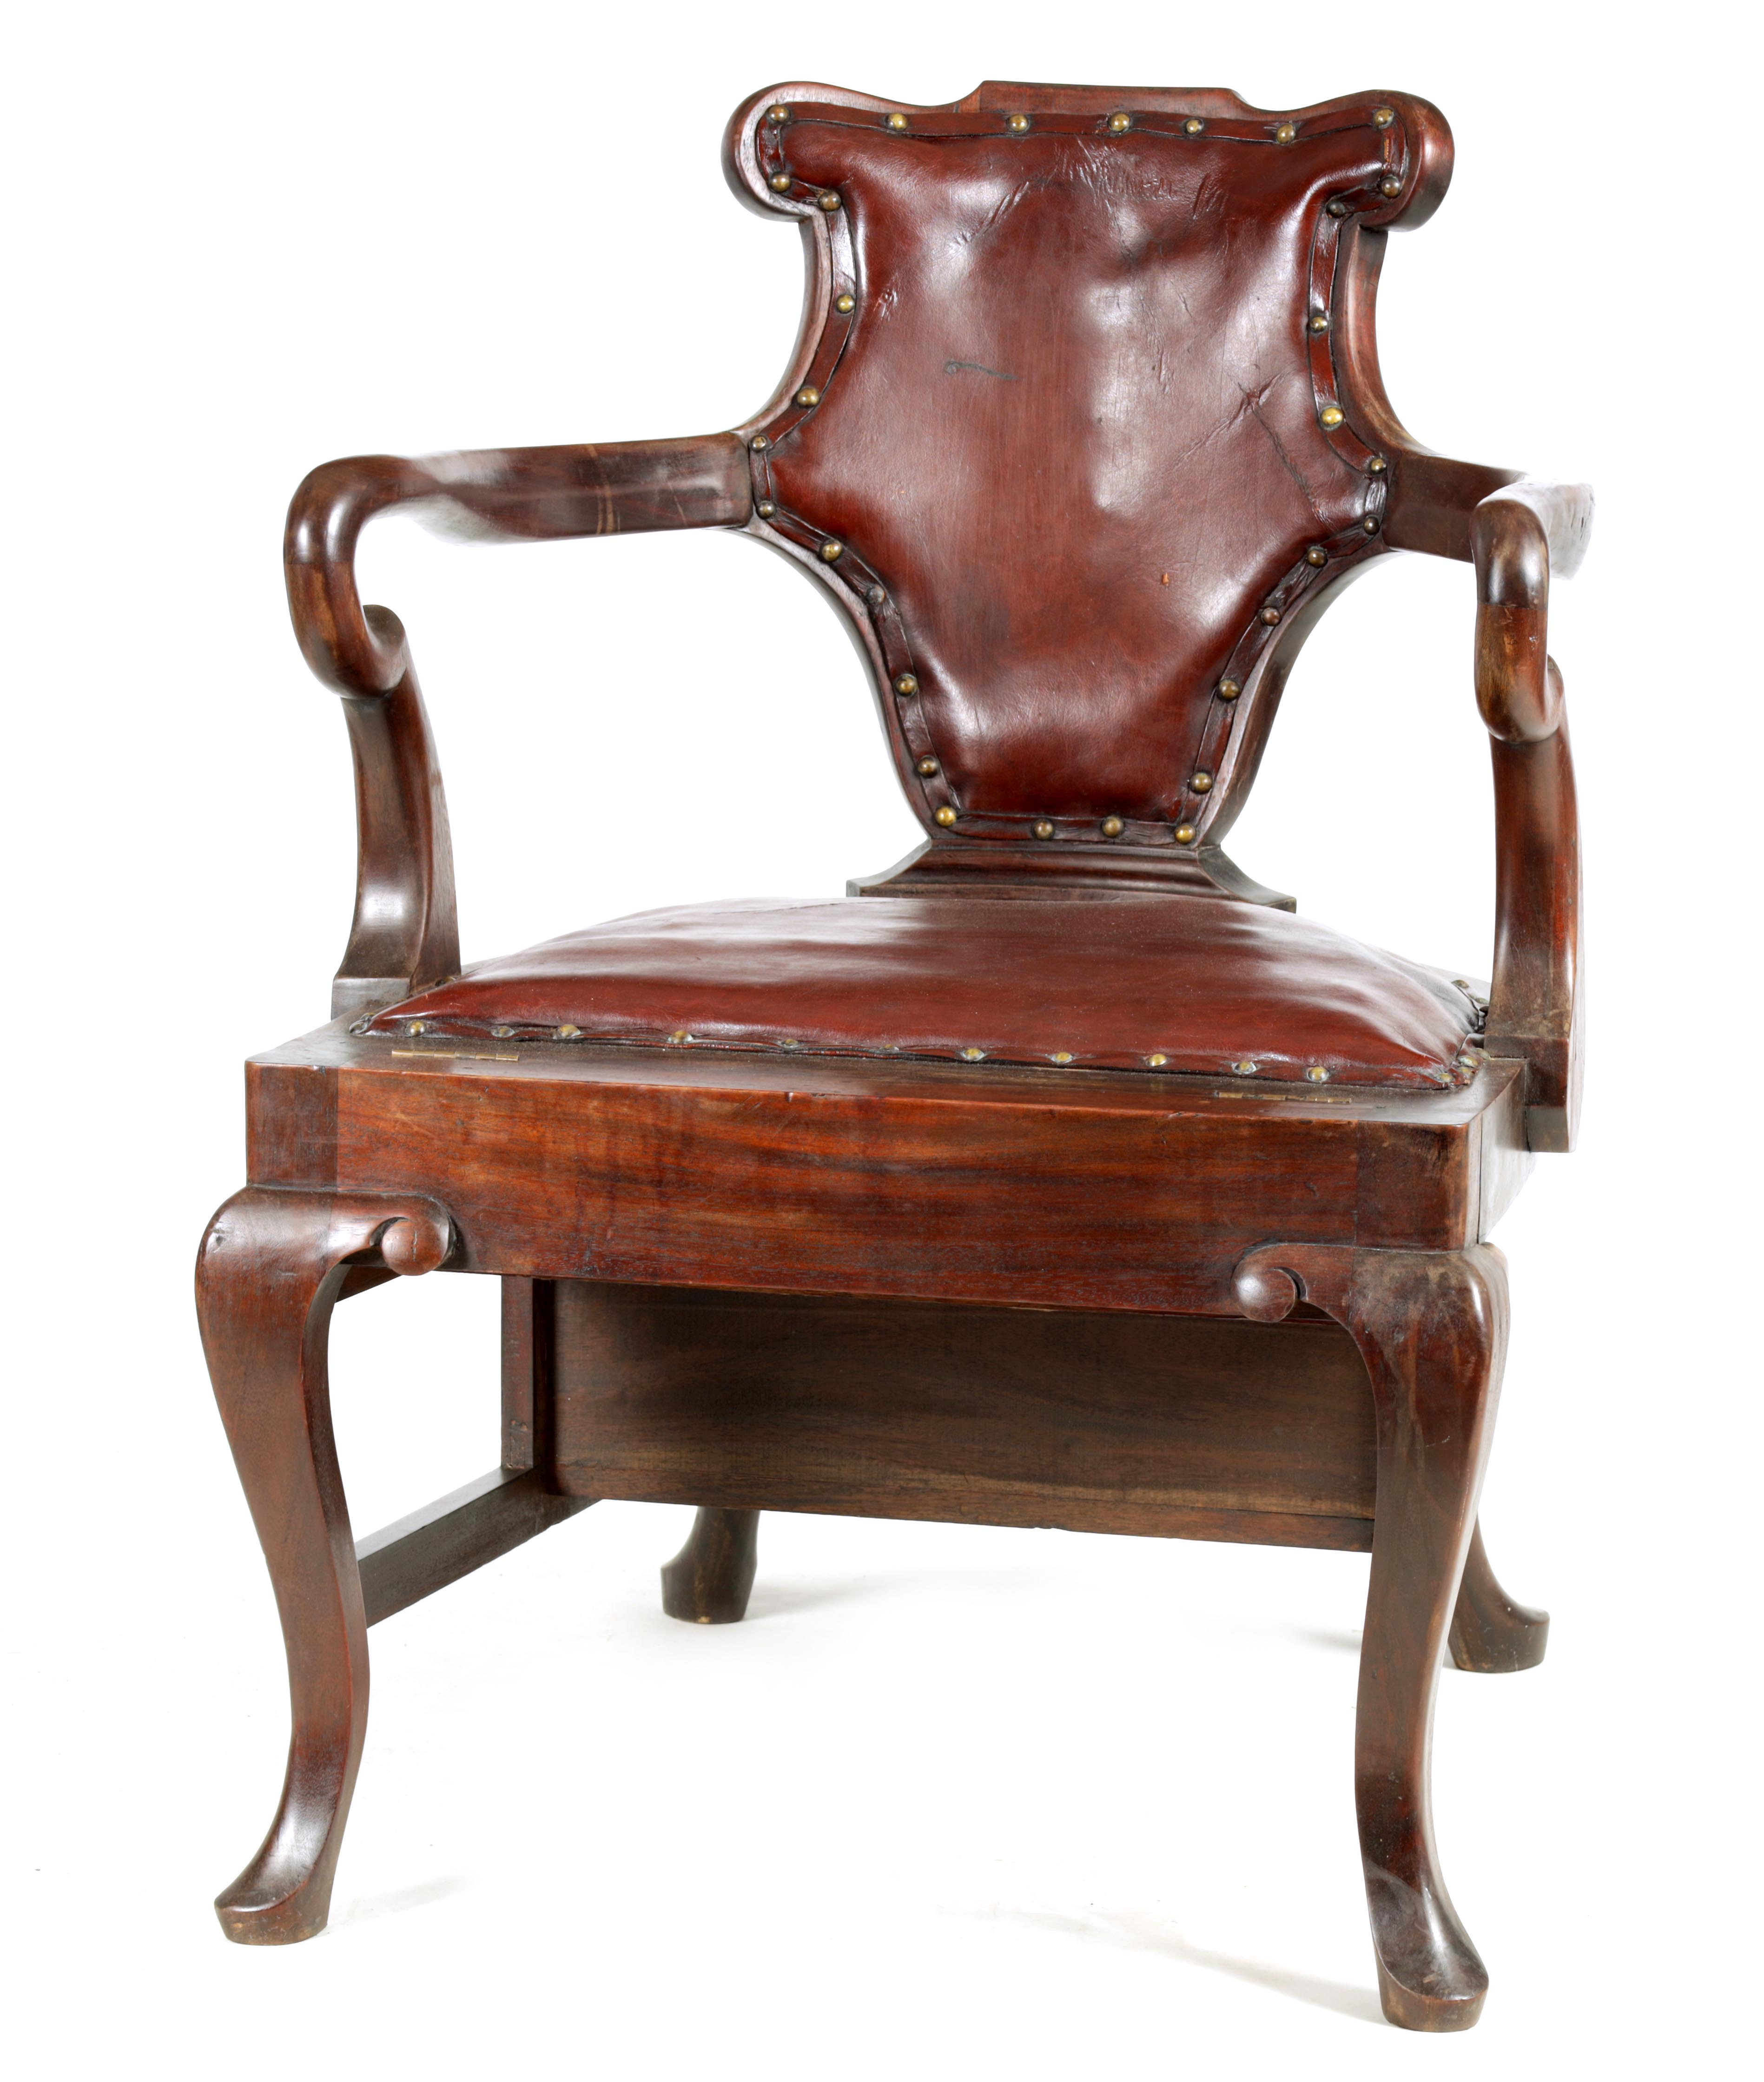 A 19TH CENTURY GEORGE II STYLE METAMORPHIC ARMCHAIR/LIBRARY STEPS with shaped back and crook arms